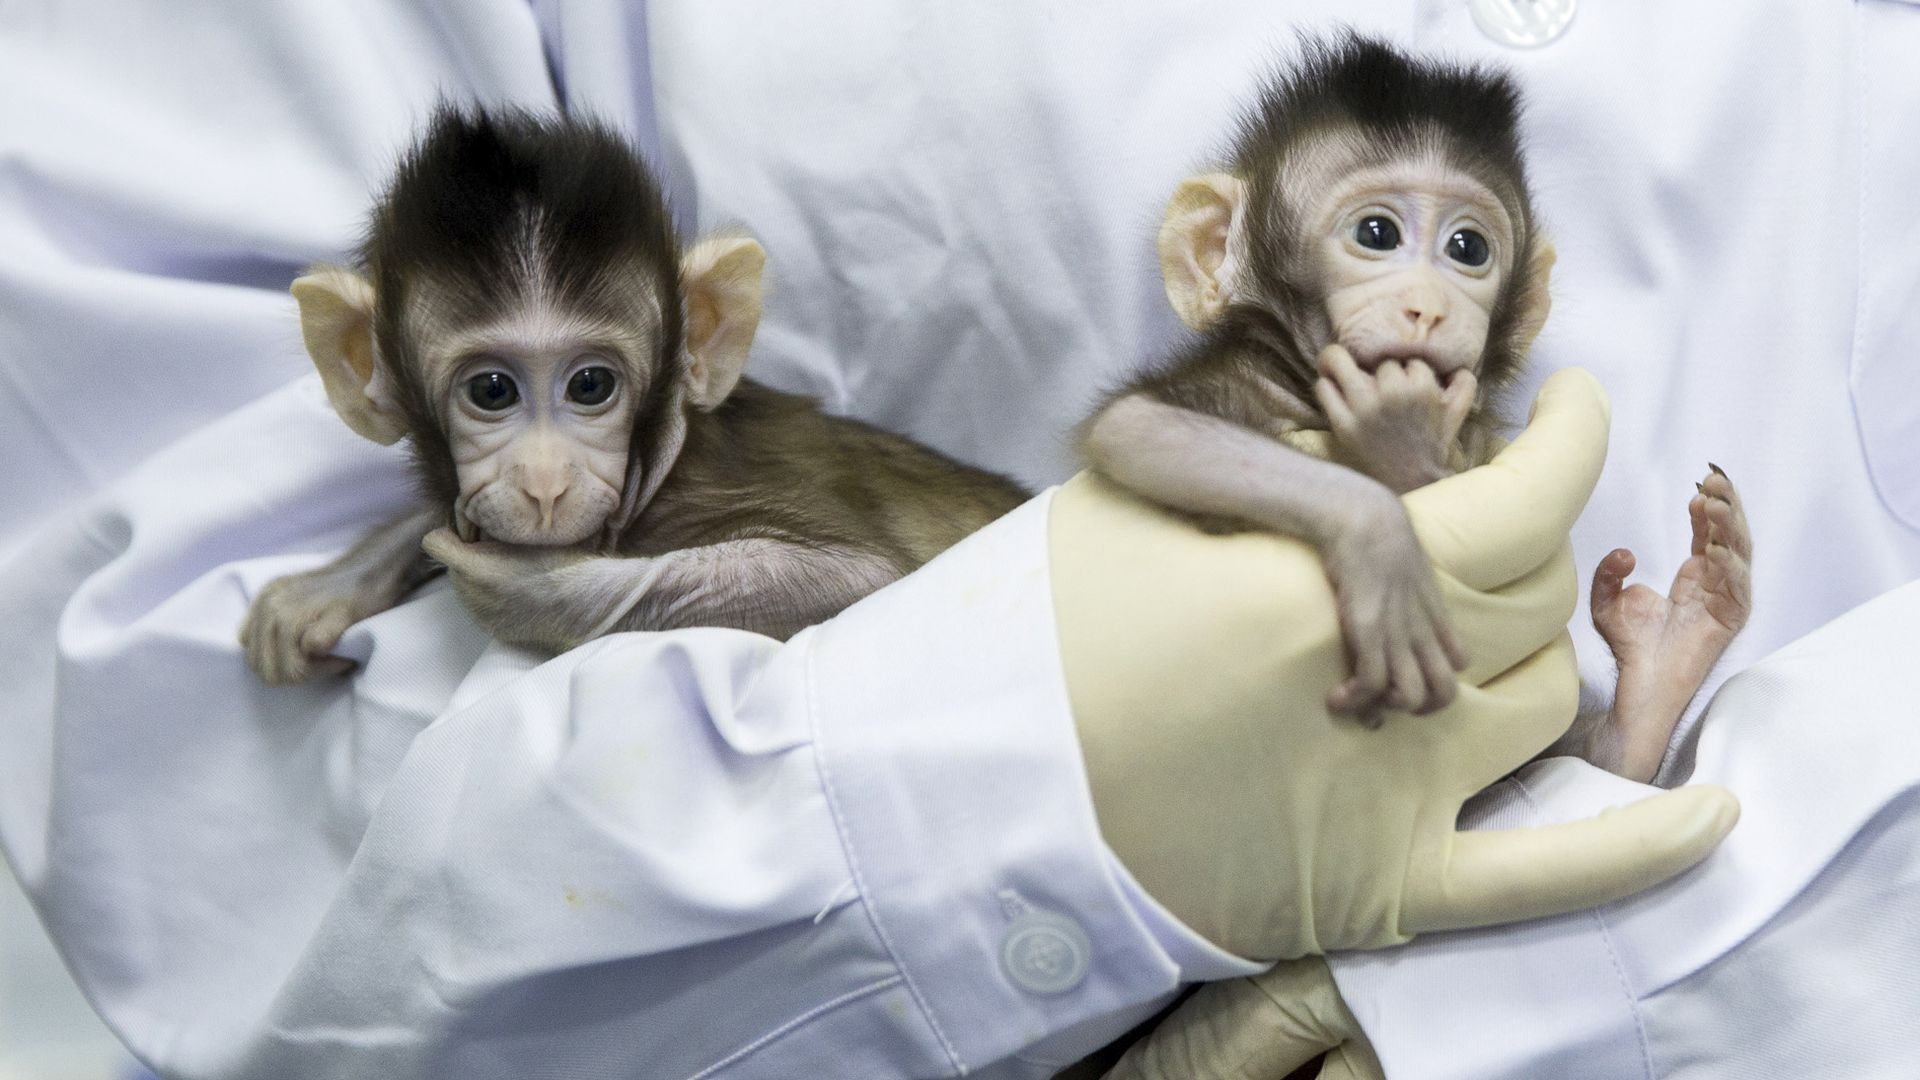 two baby macaque monkeys held by scientist in lab coat and gloves